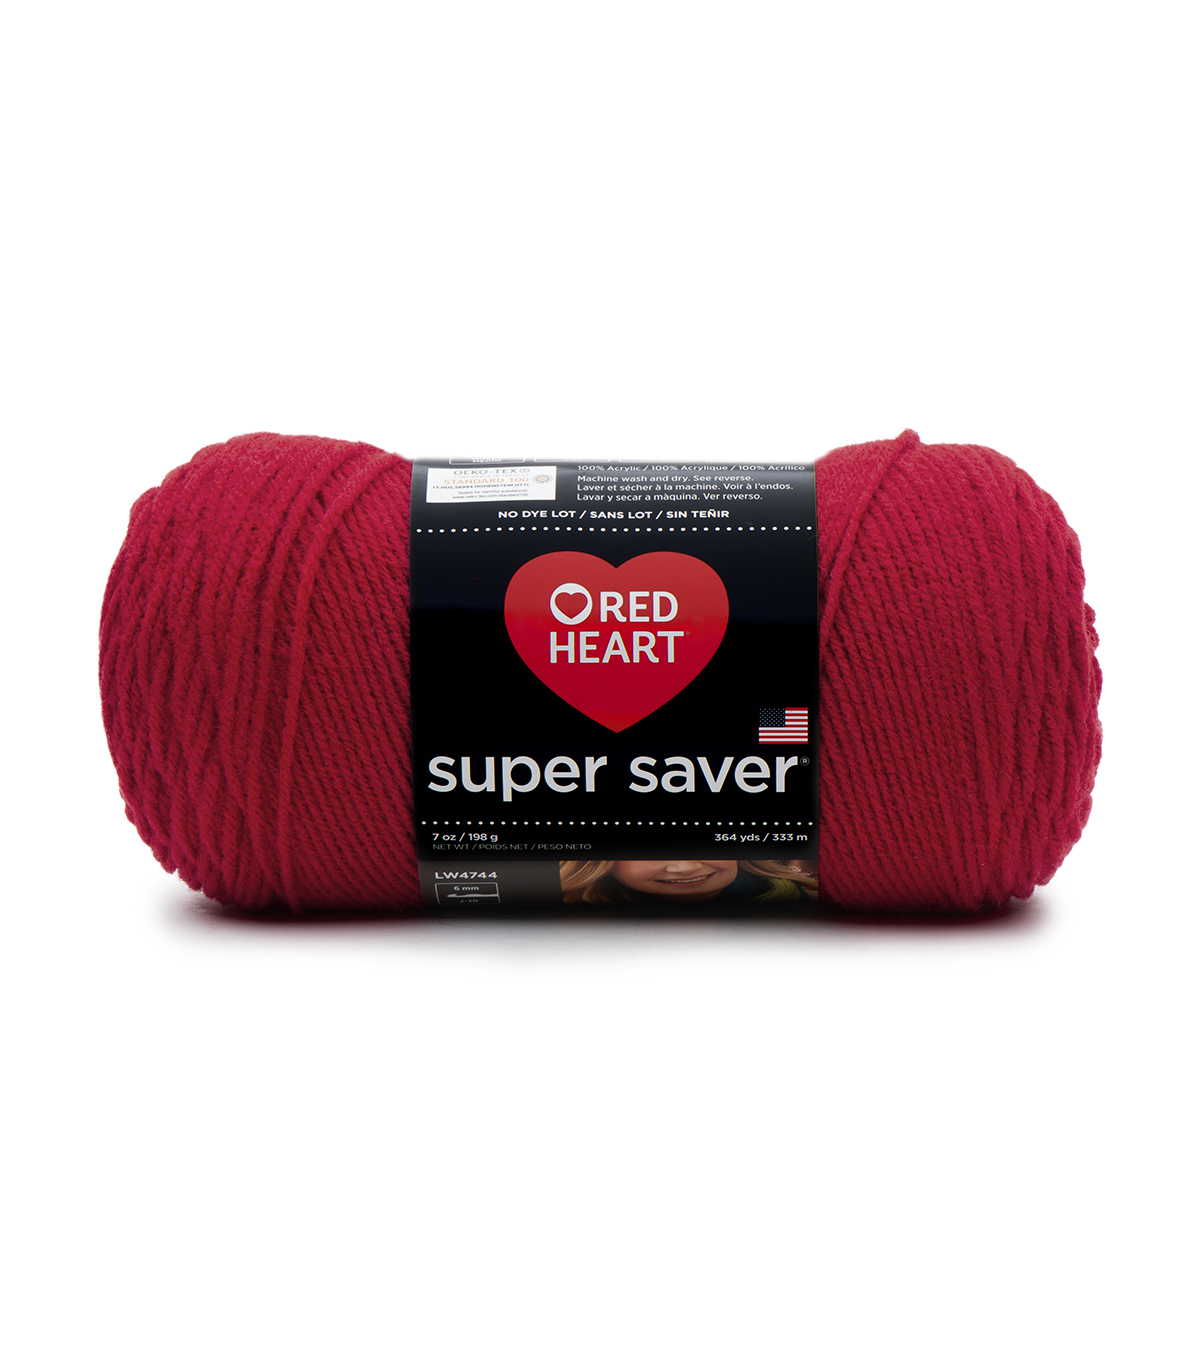 Red Heart Super Saver Ombre Yarn-Sweet Treat 2 Pack